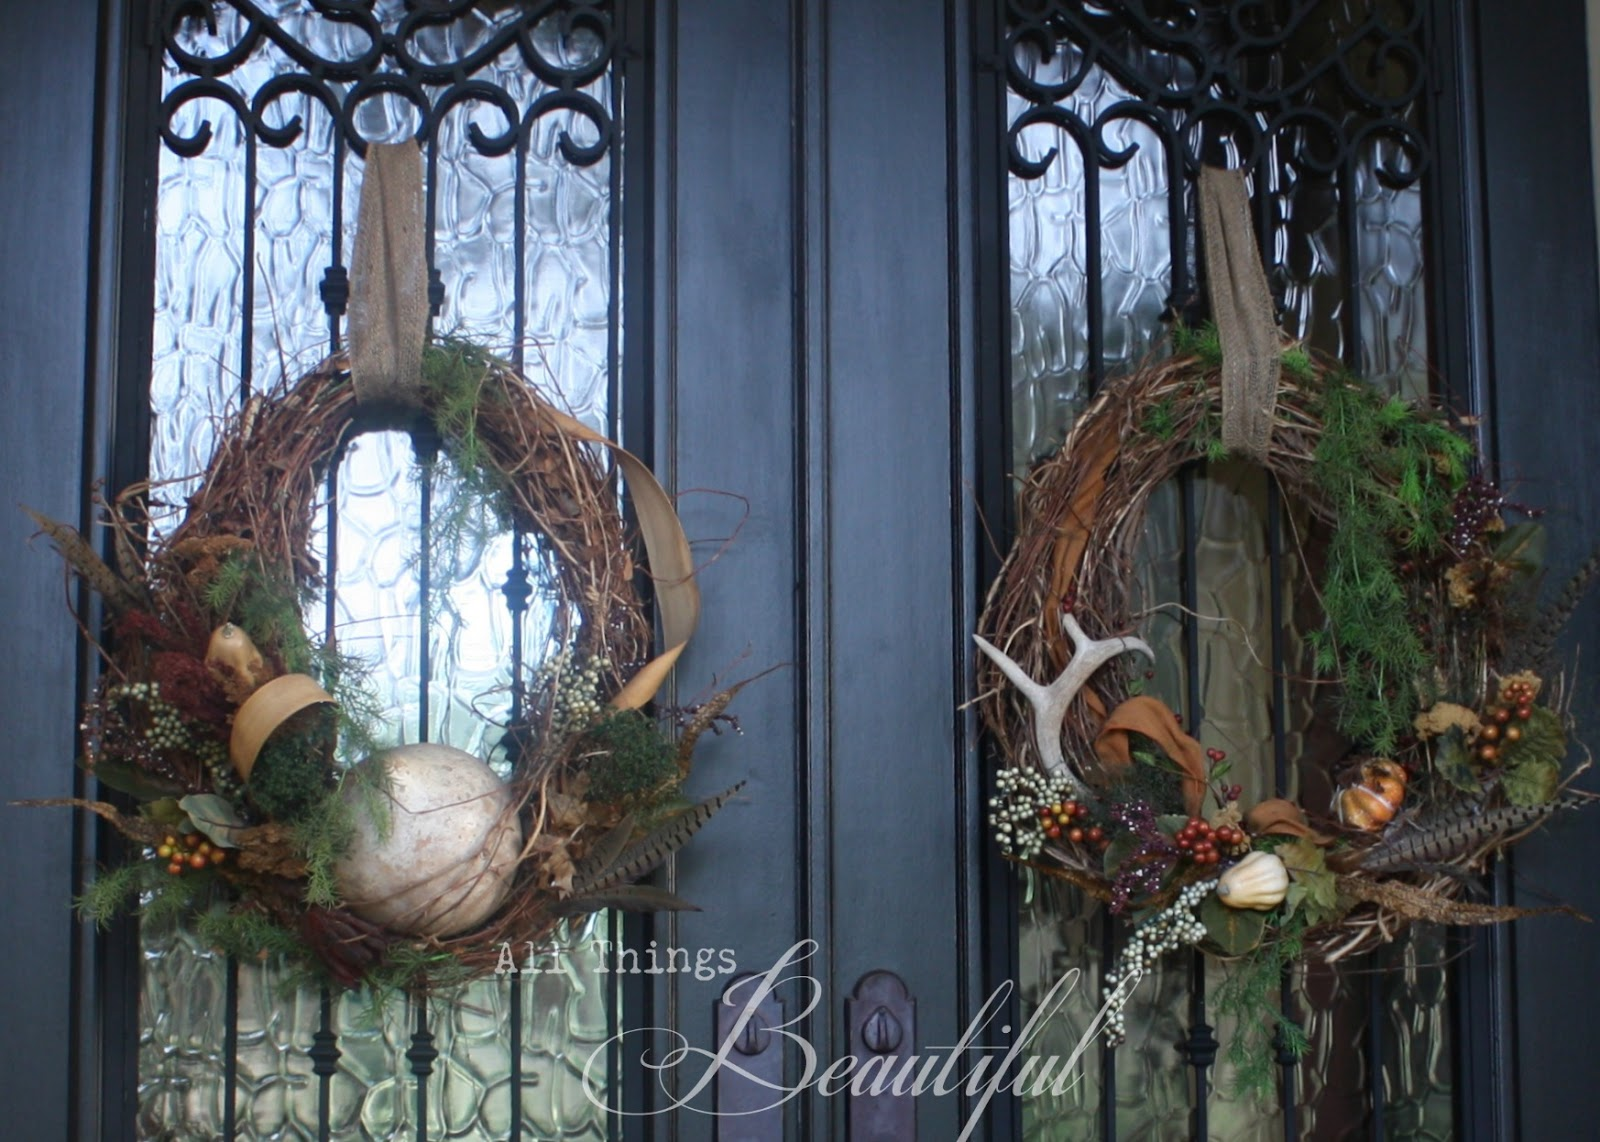 Since I Have Double Doors That Means Wreaths